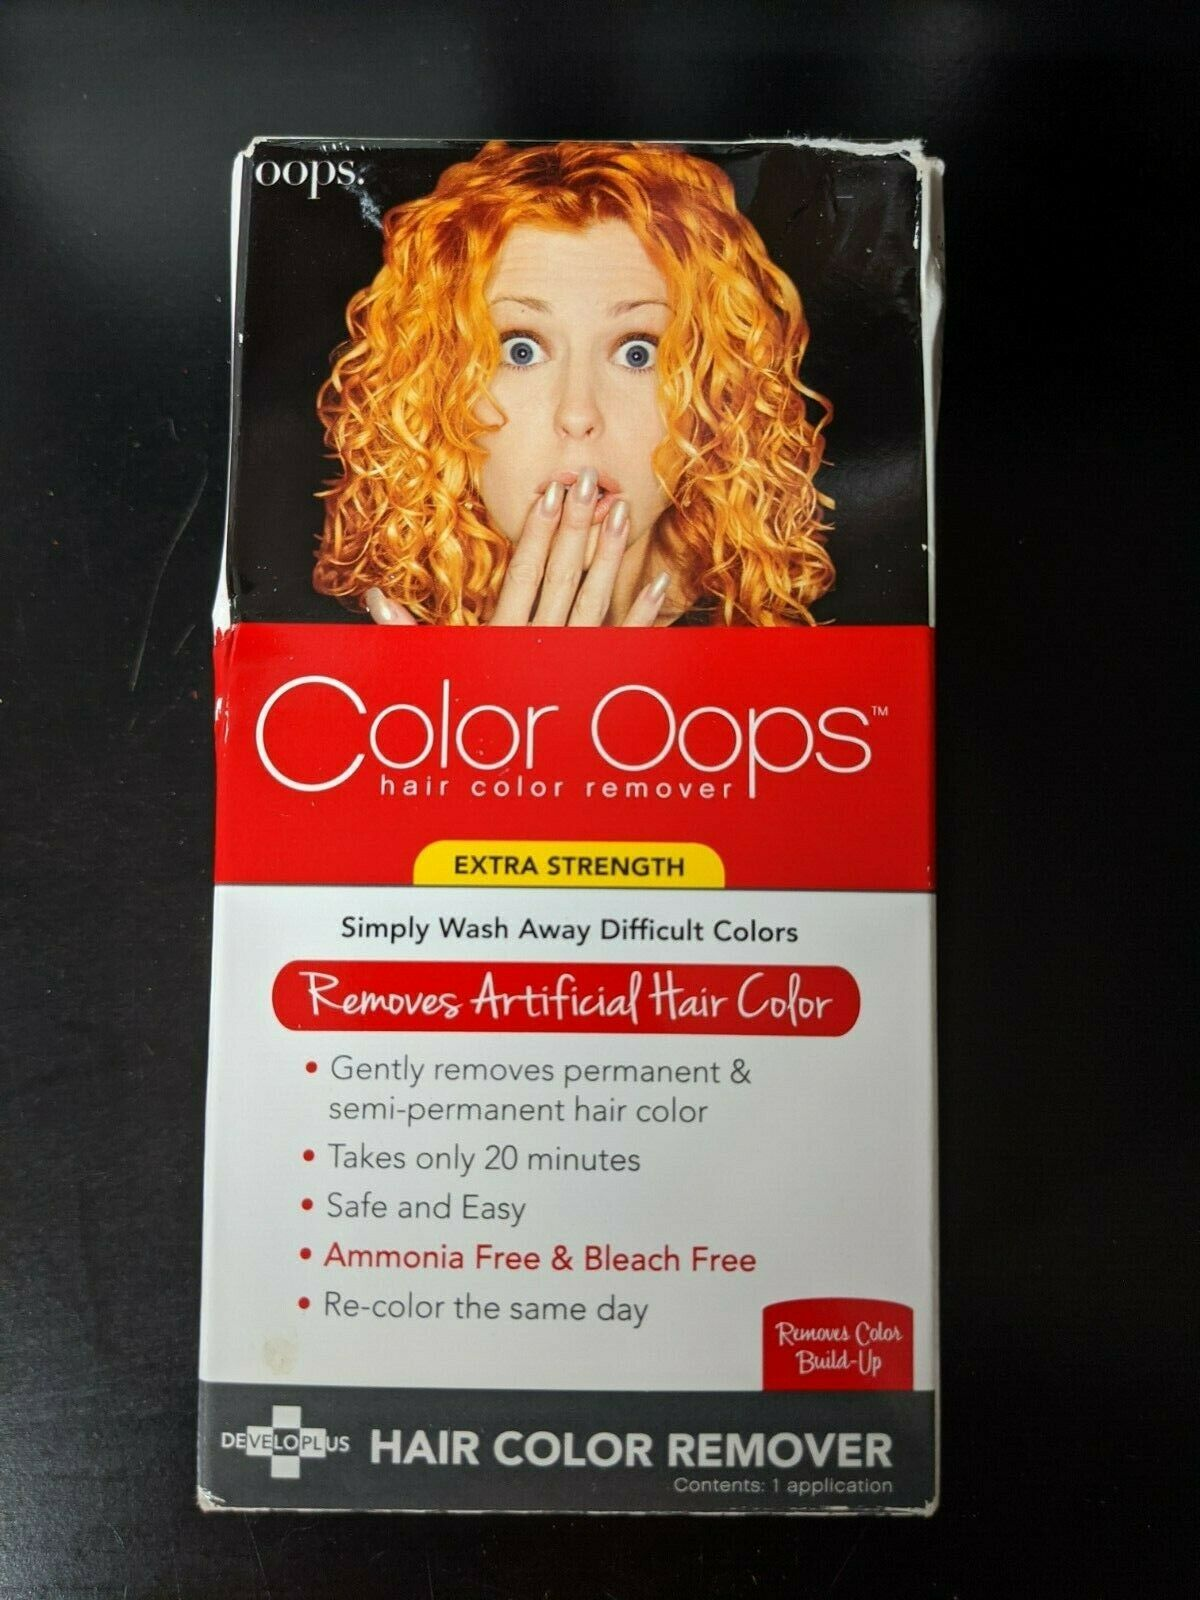 Developlus Color Oops Extra Strength Hair Color Remover For Sale Online Ebay Original is a better formulation for hair color which is not very dark, and which was used in the past 48 hours. developlus color oops extra strength hair color remover